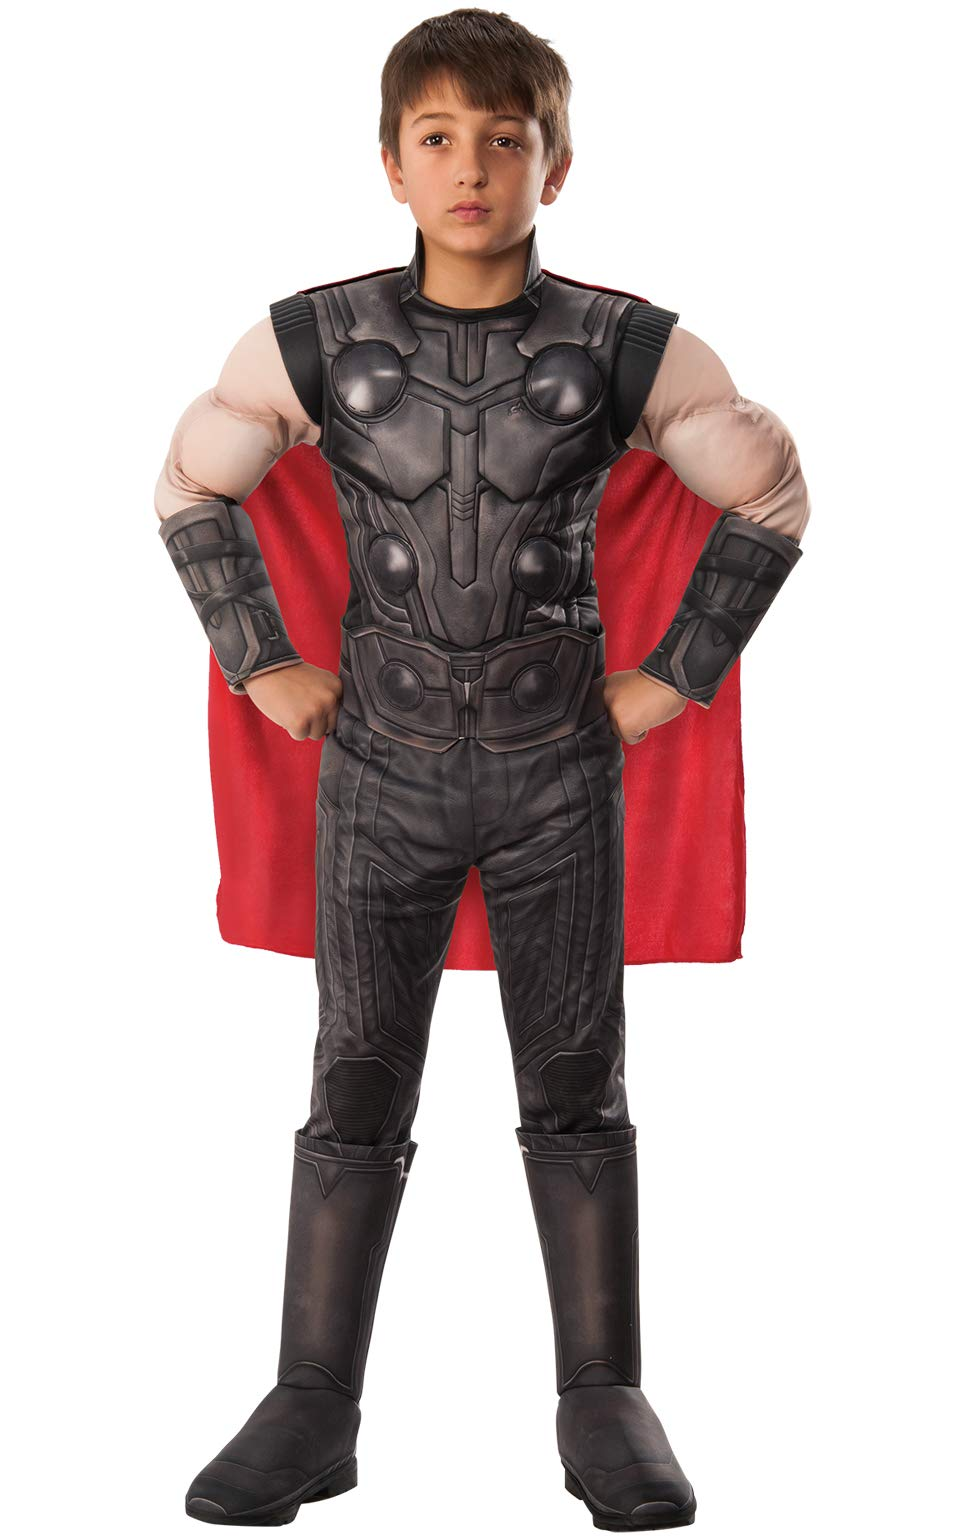 Rubie's Marvel: Avengers Endgame Child's Deluxe Thor Costume